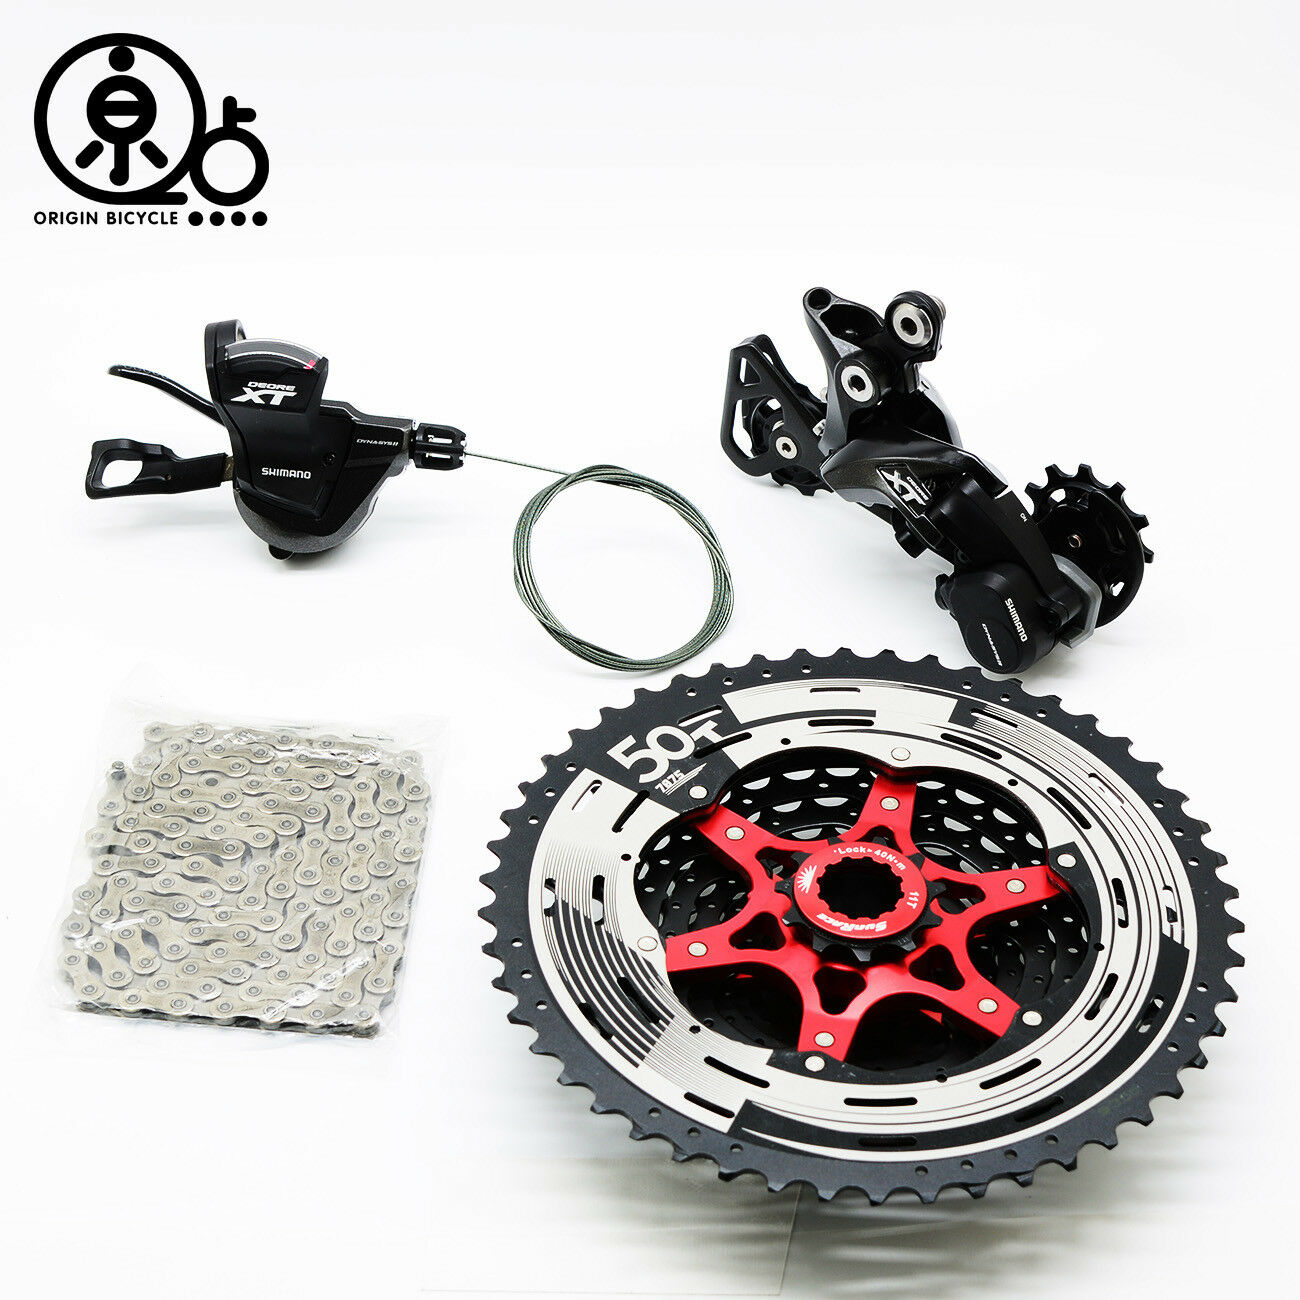 SHIMANO Deore  XT M8000 Bike Groupset Drivetrain Kit Group 11-Speed Derailleur  free and fast delivery available